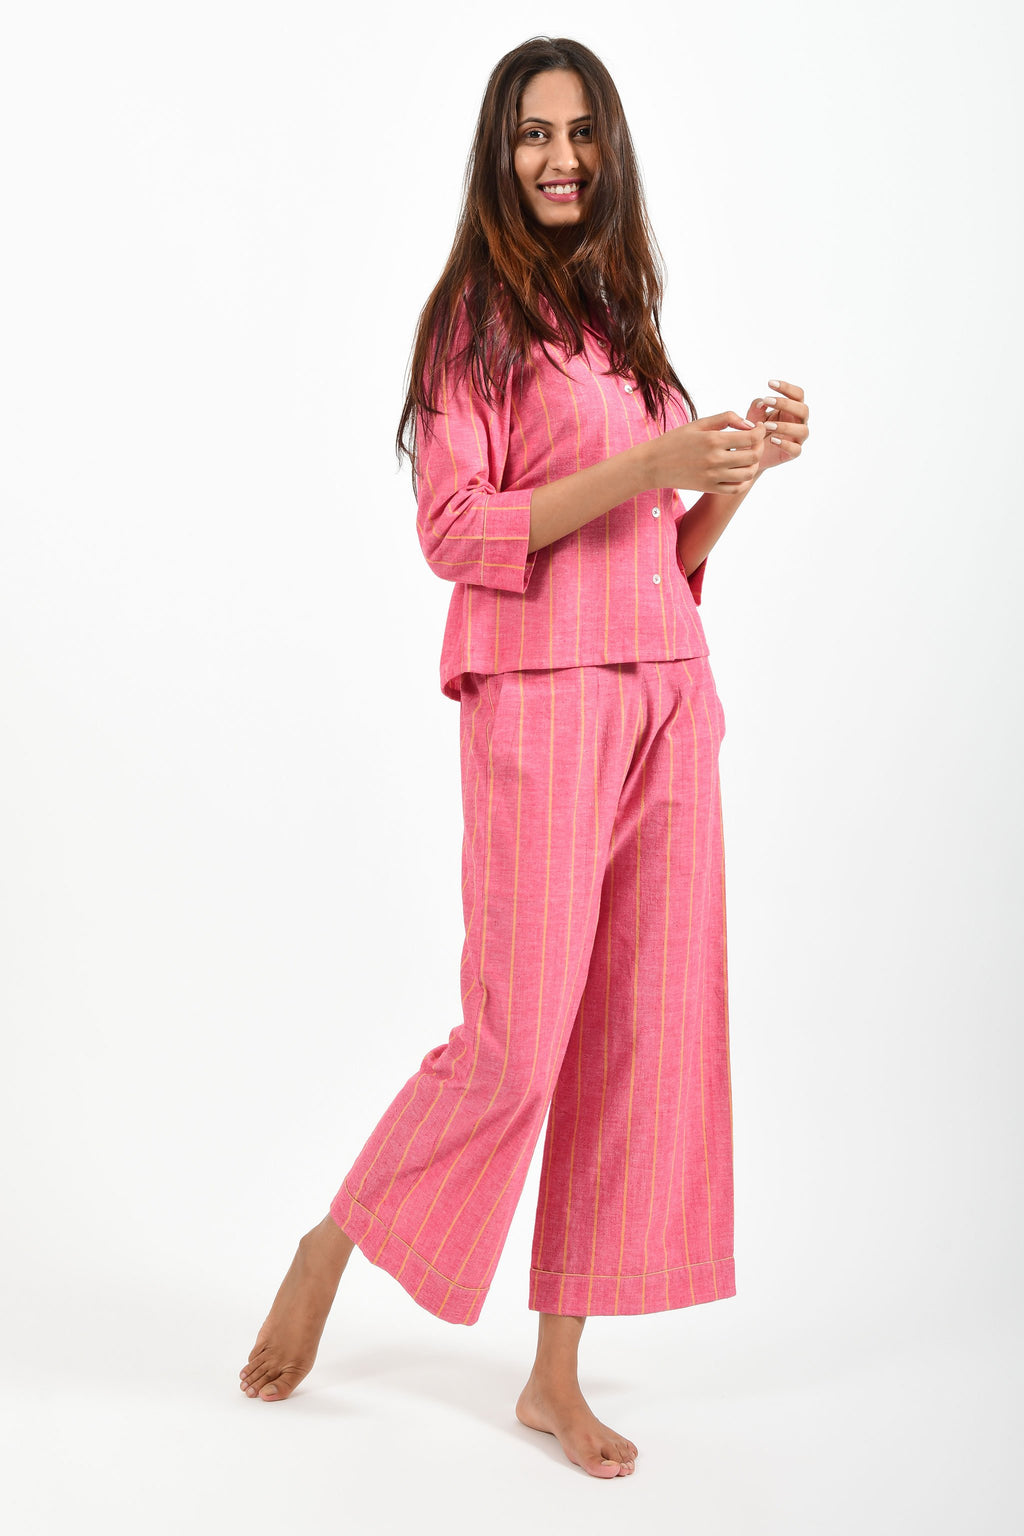 Creative pose of an Indian female womenswear fashion model in azo-free dyed handspun and handwoven khadi cotton nightwear pyjama & shirt with red base and orange stripes by Cotton Rack.